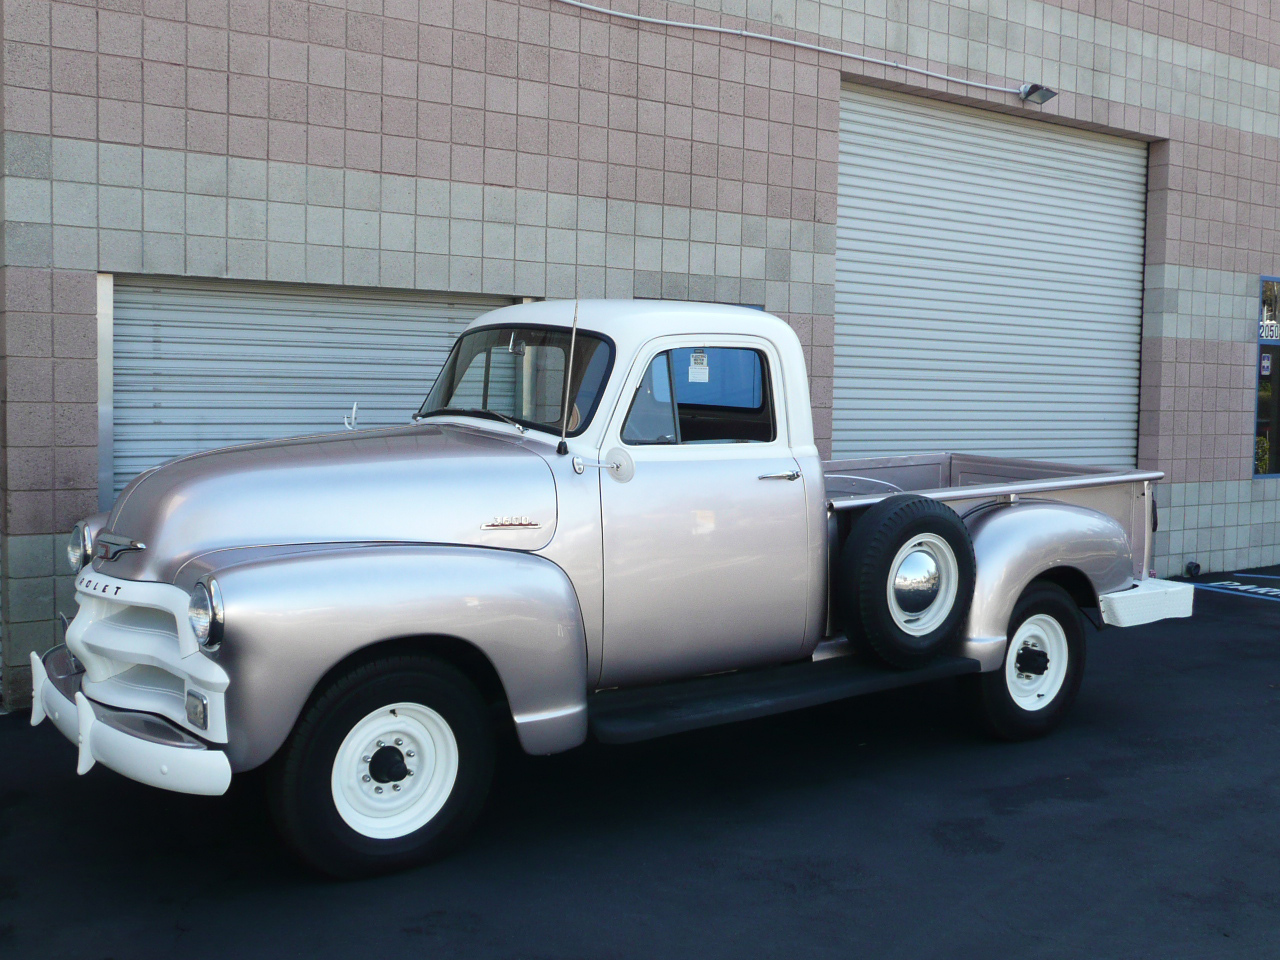 All Chevy 1954 chevy : 1954 CHEVROLET 3600 LONG BED PICKUP - 80992